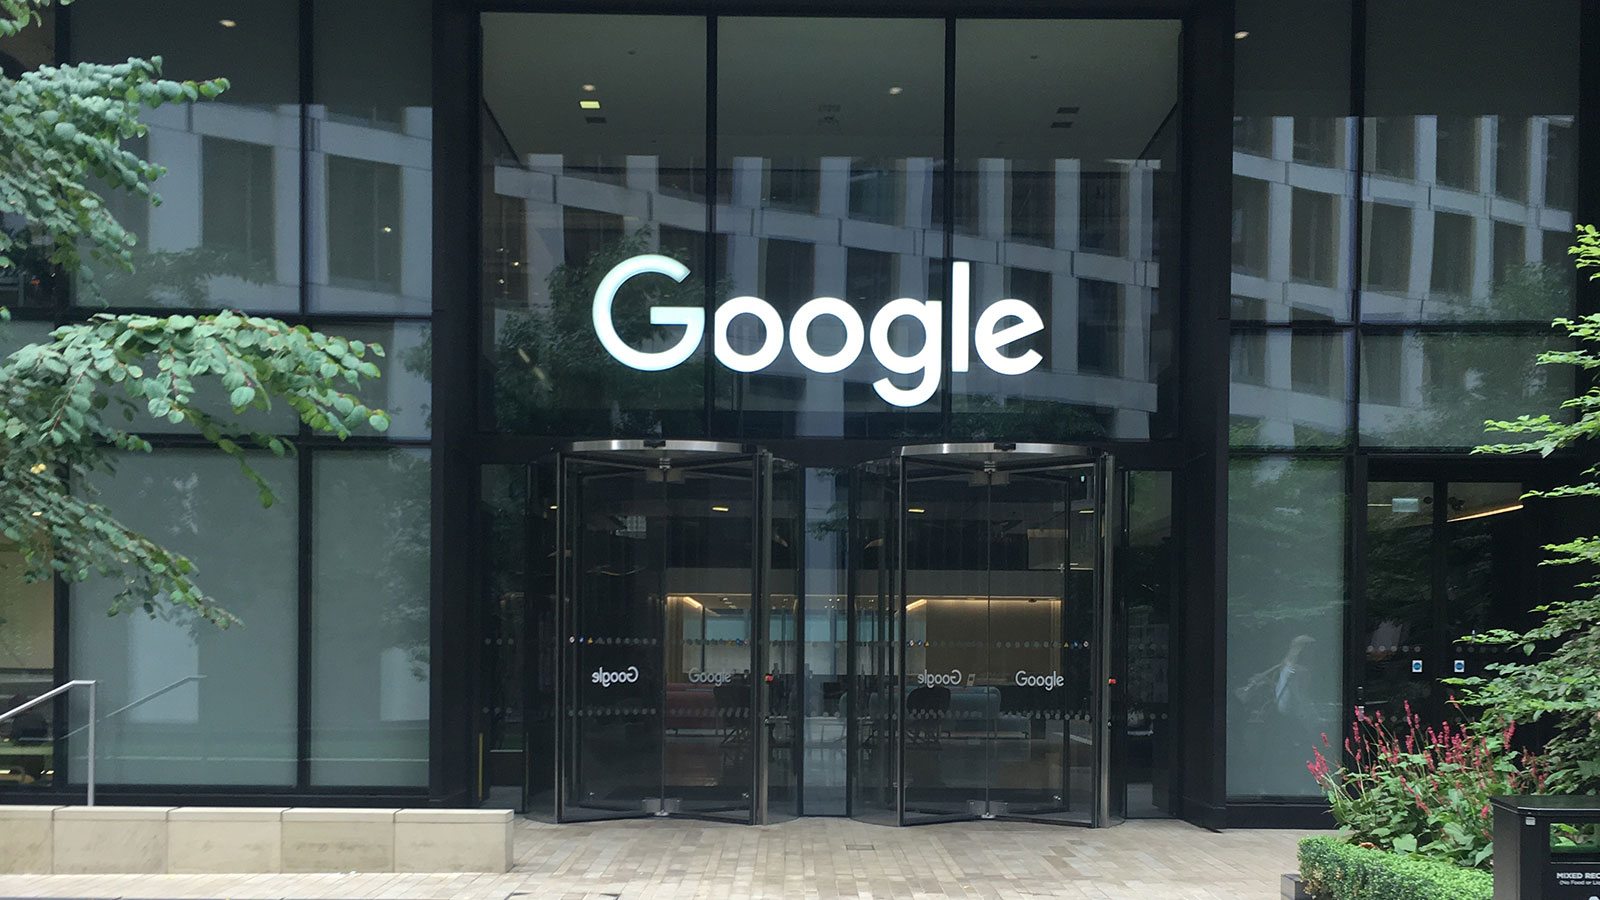 Google Headquarters in London